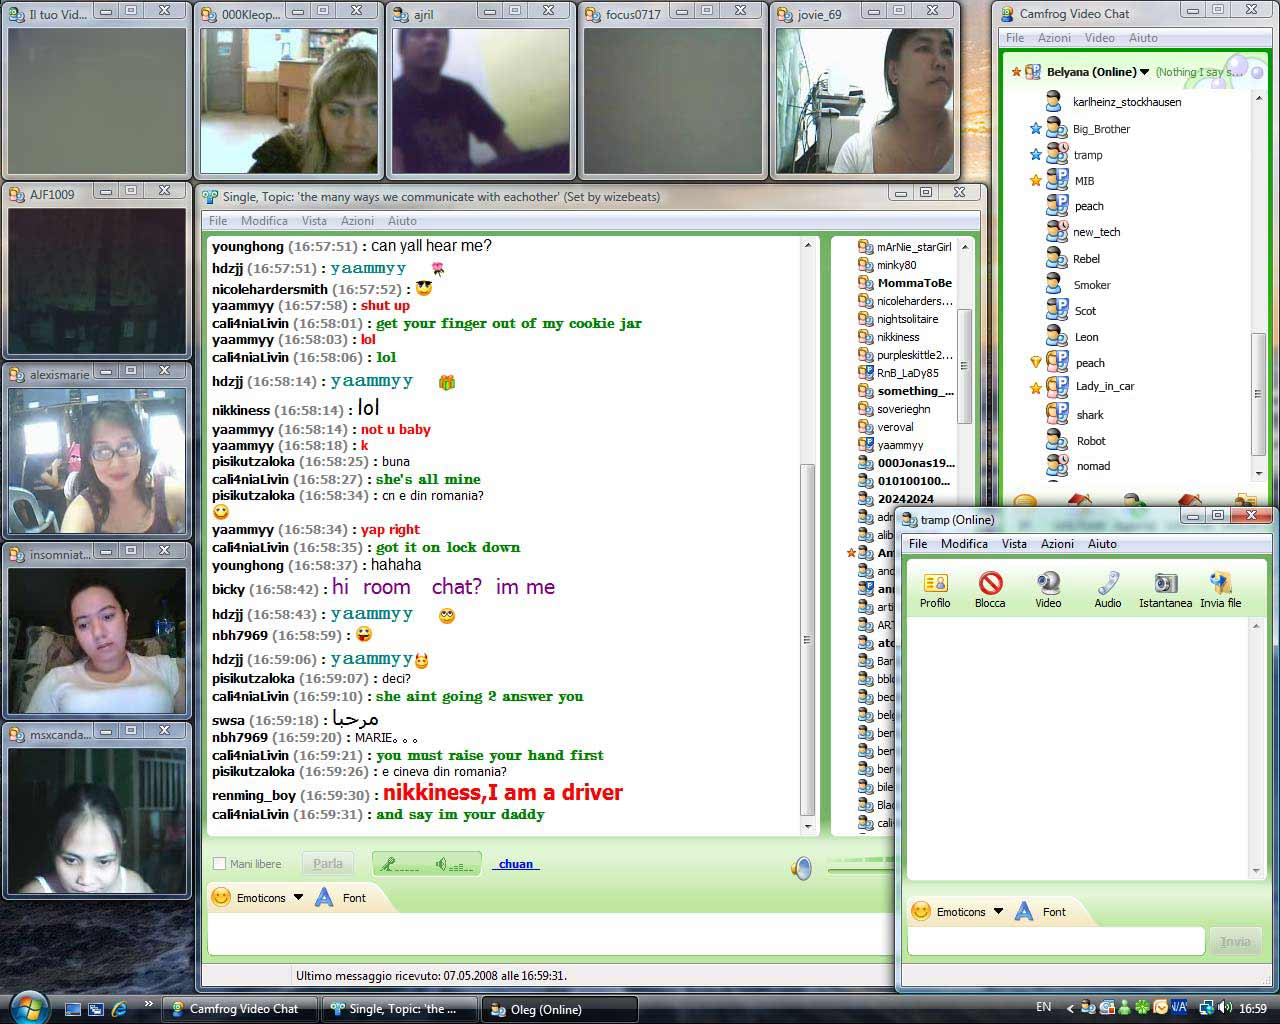 Camfrog Video Chat: Free Video Chat Rooms & Live Webcams!: http://update-seputar-software.blogspot.com/2012/05/camfrog-video-chat-free-video-chat.html